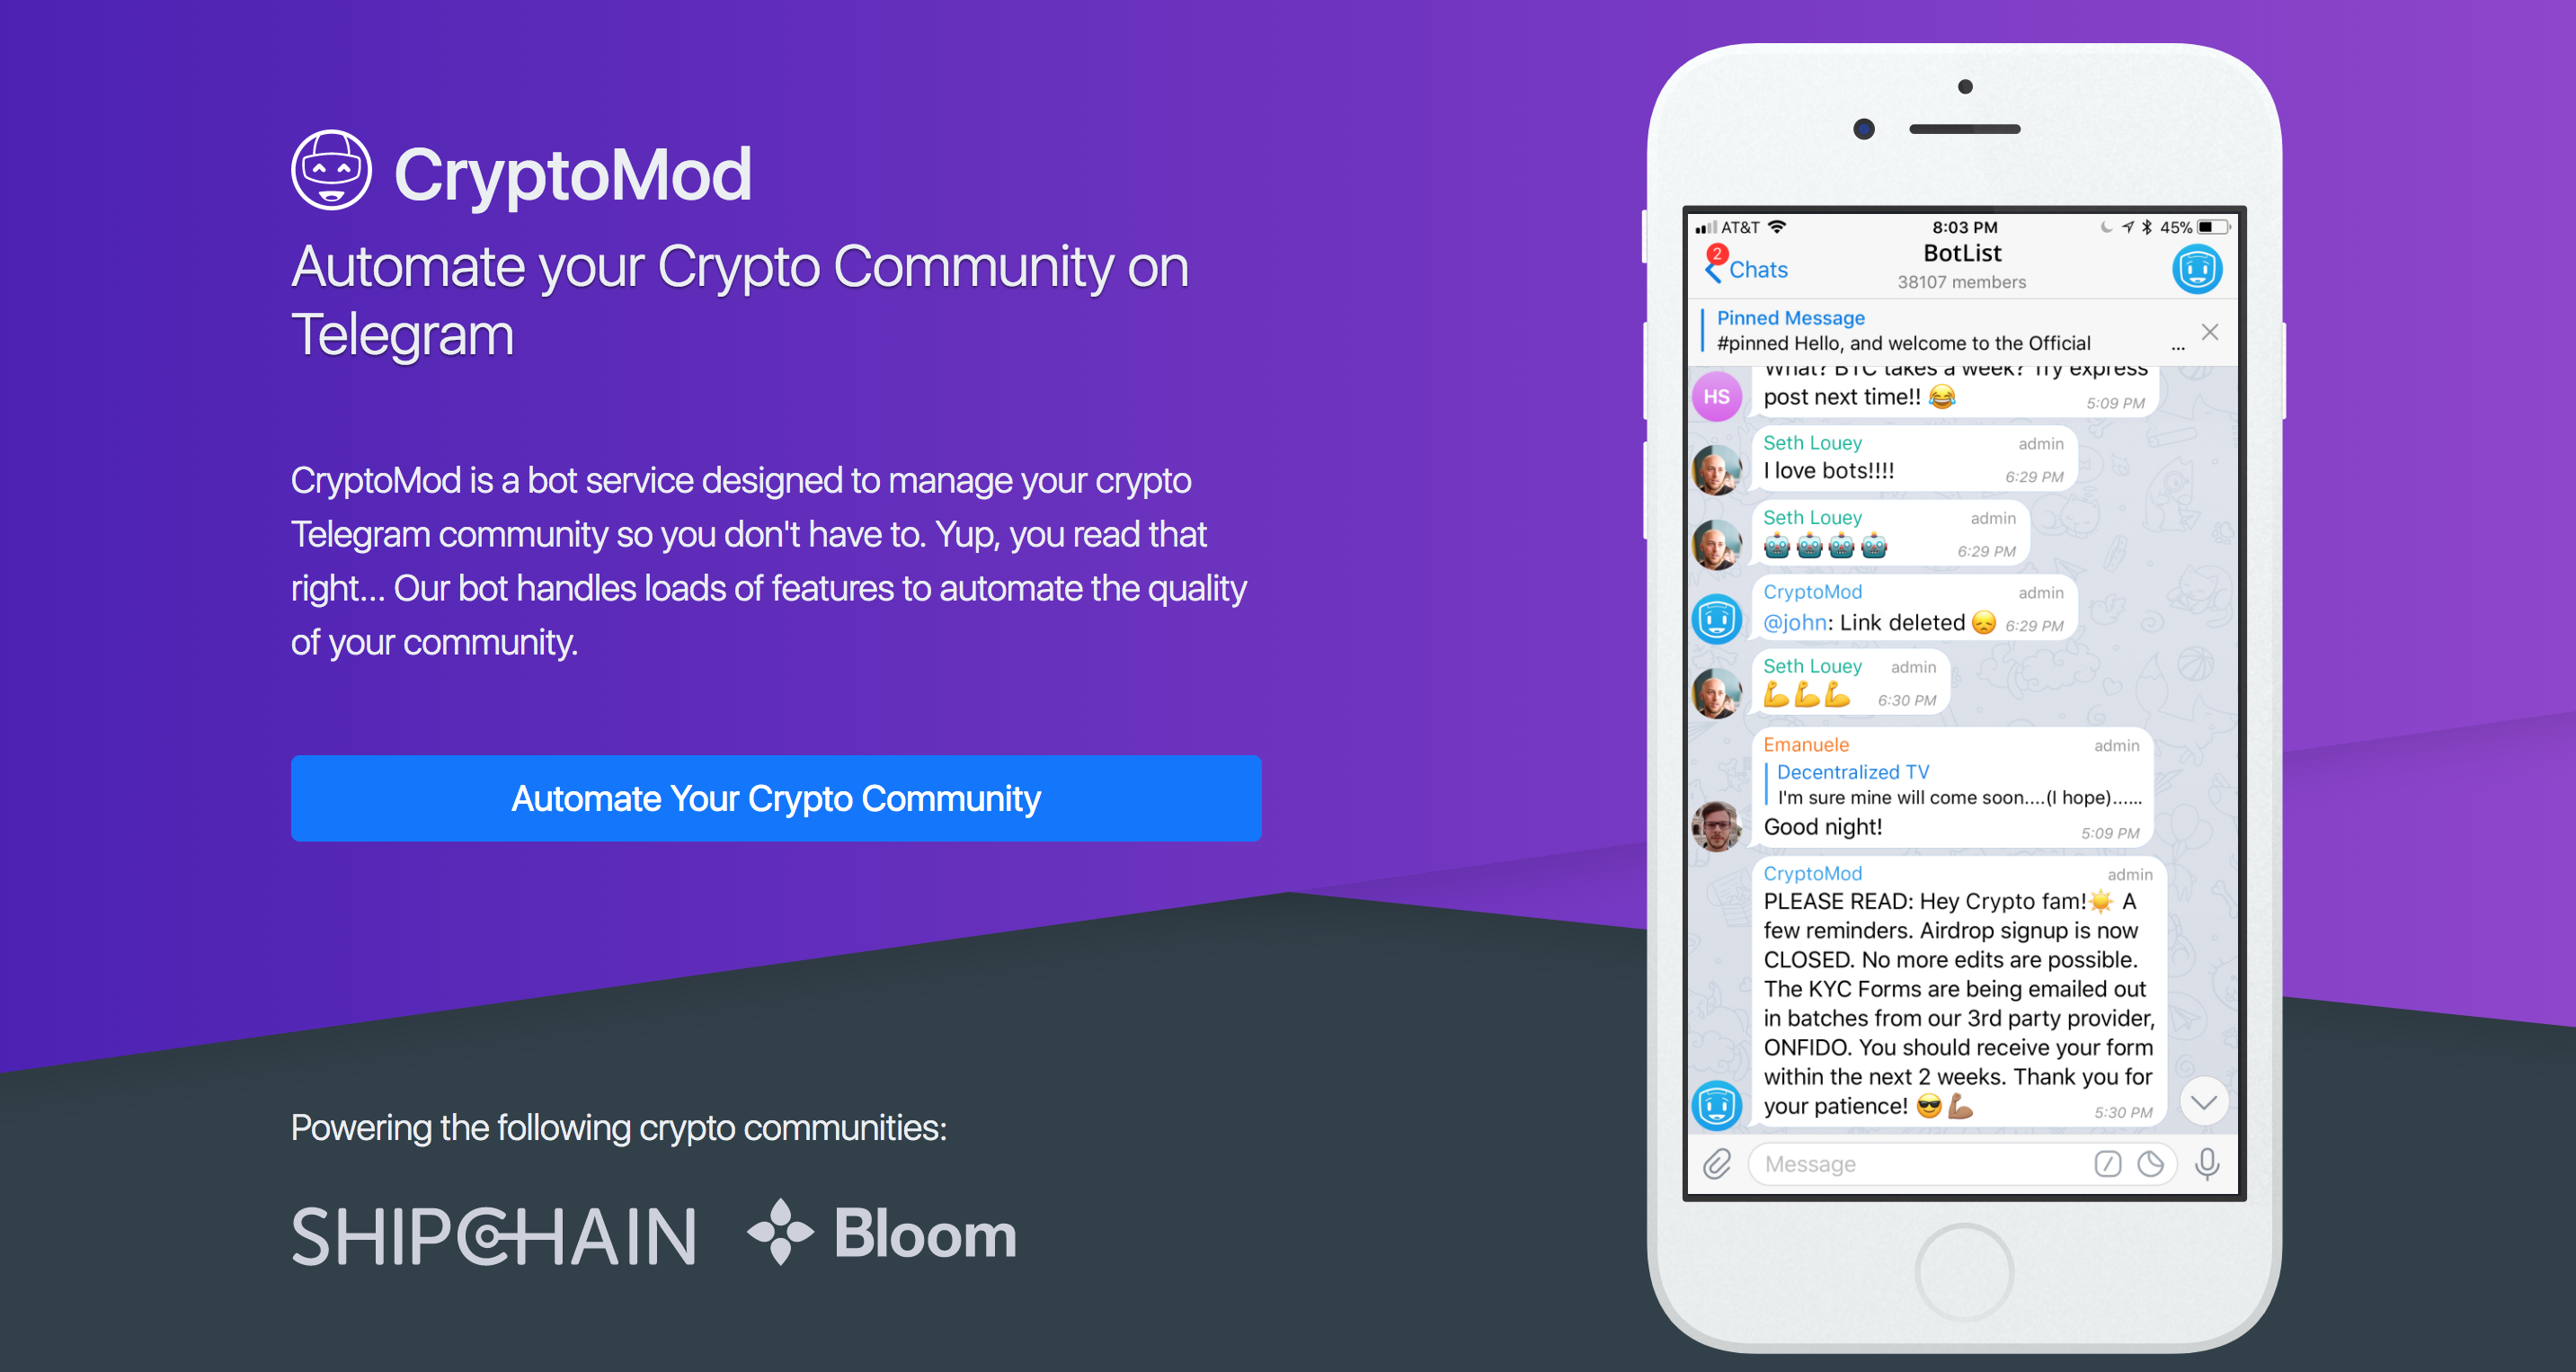 Automate Moderation for your Crypto Community on Telegram